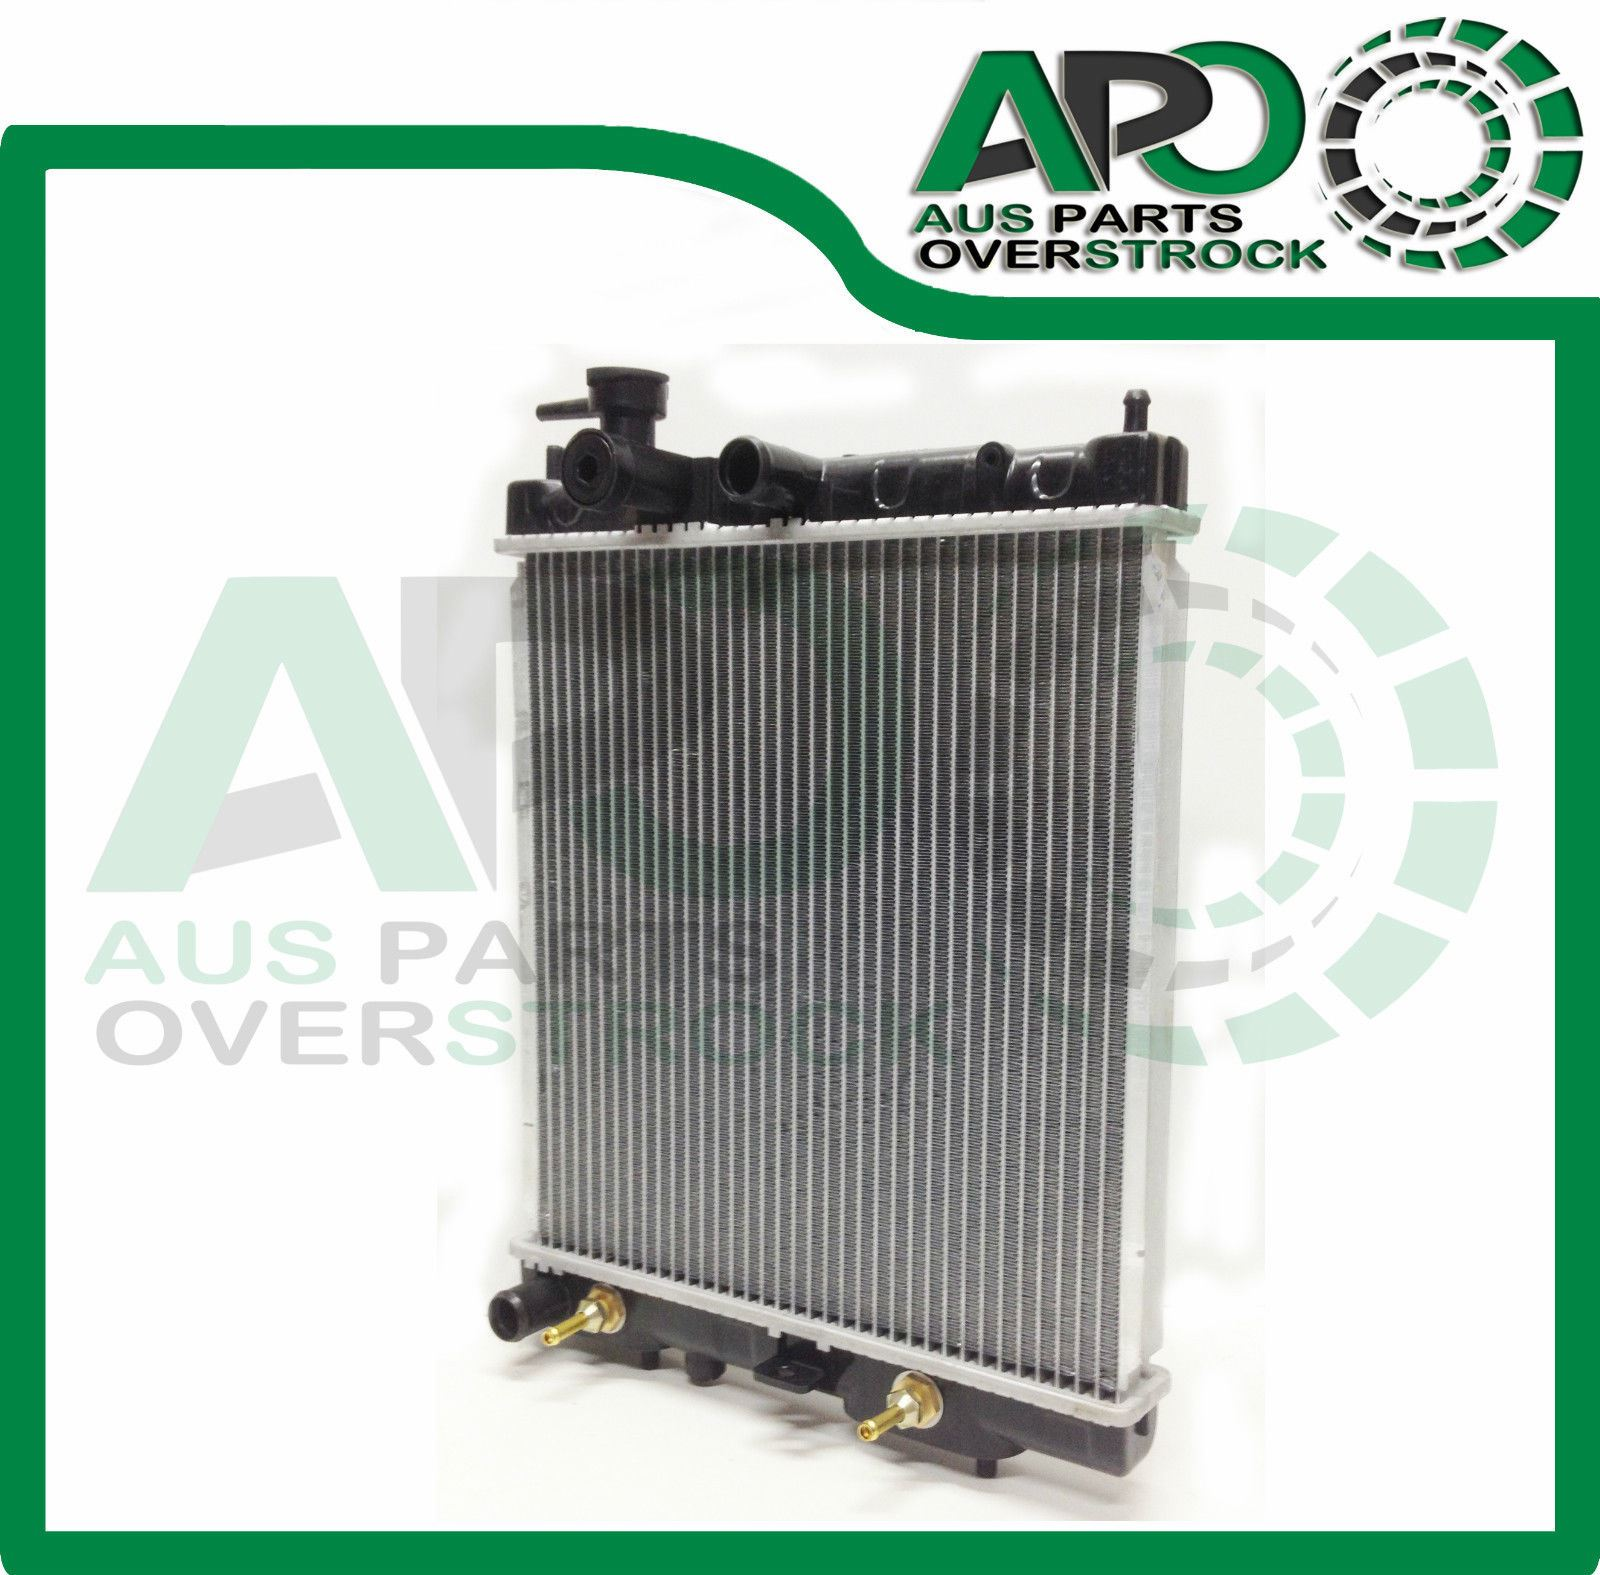 Quality Radiator For NISSAN Micra K11 1.3L Auto / Manual 5 ...